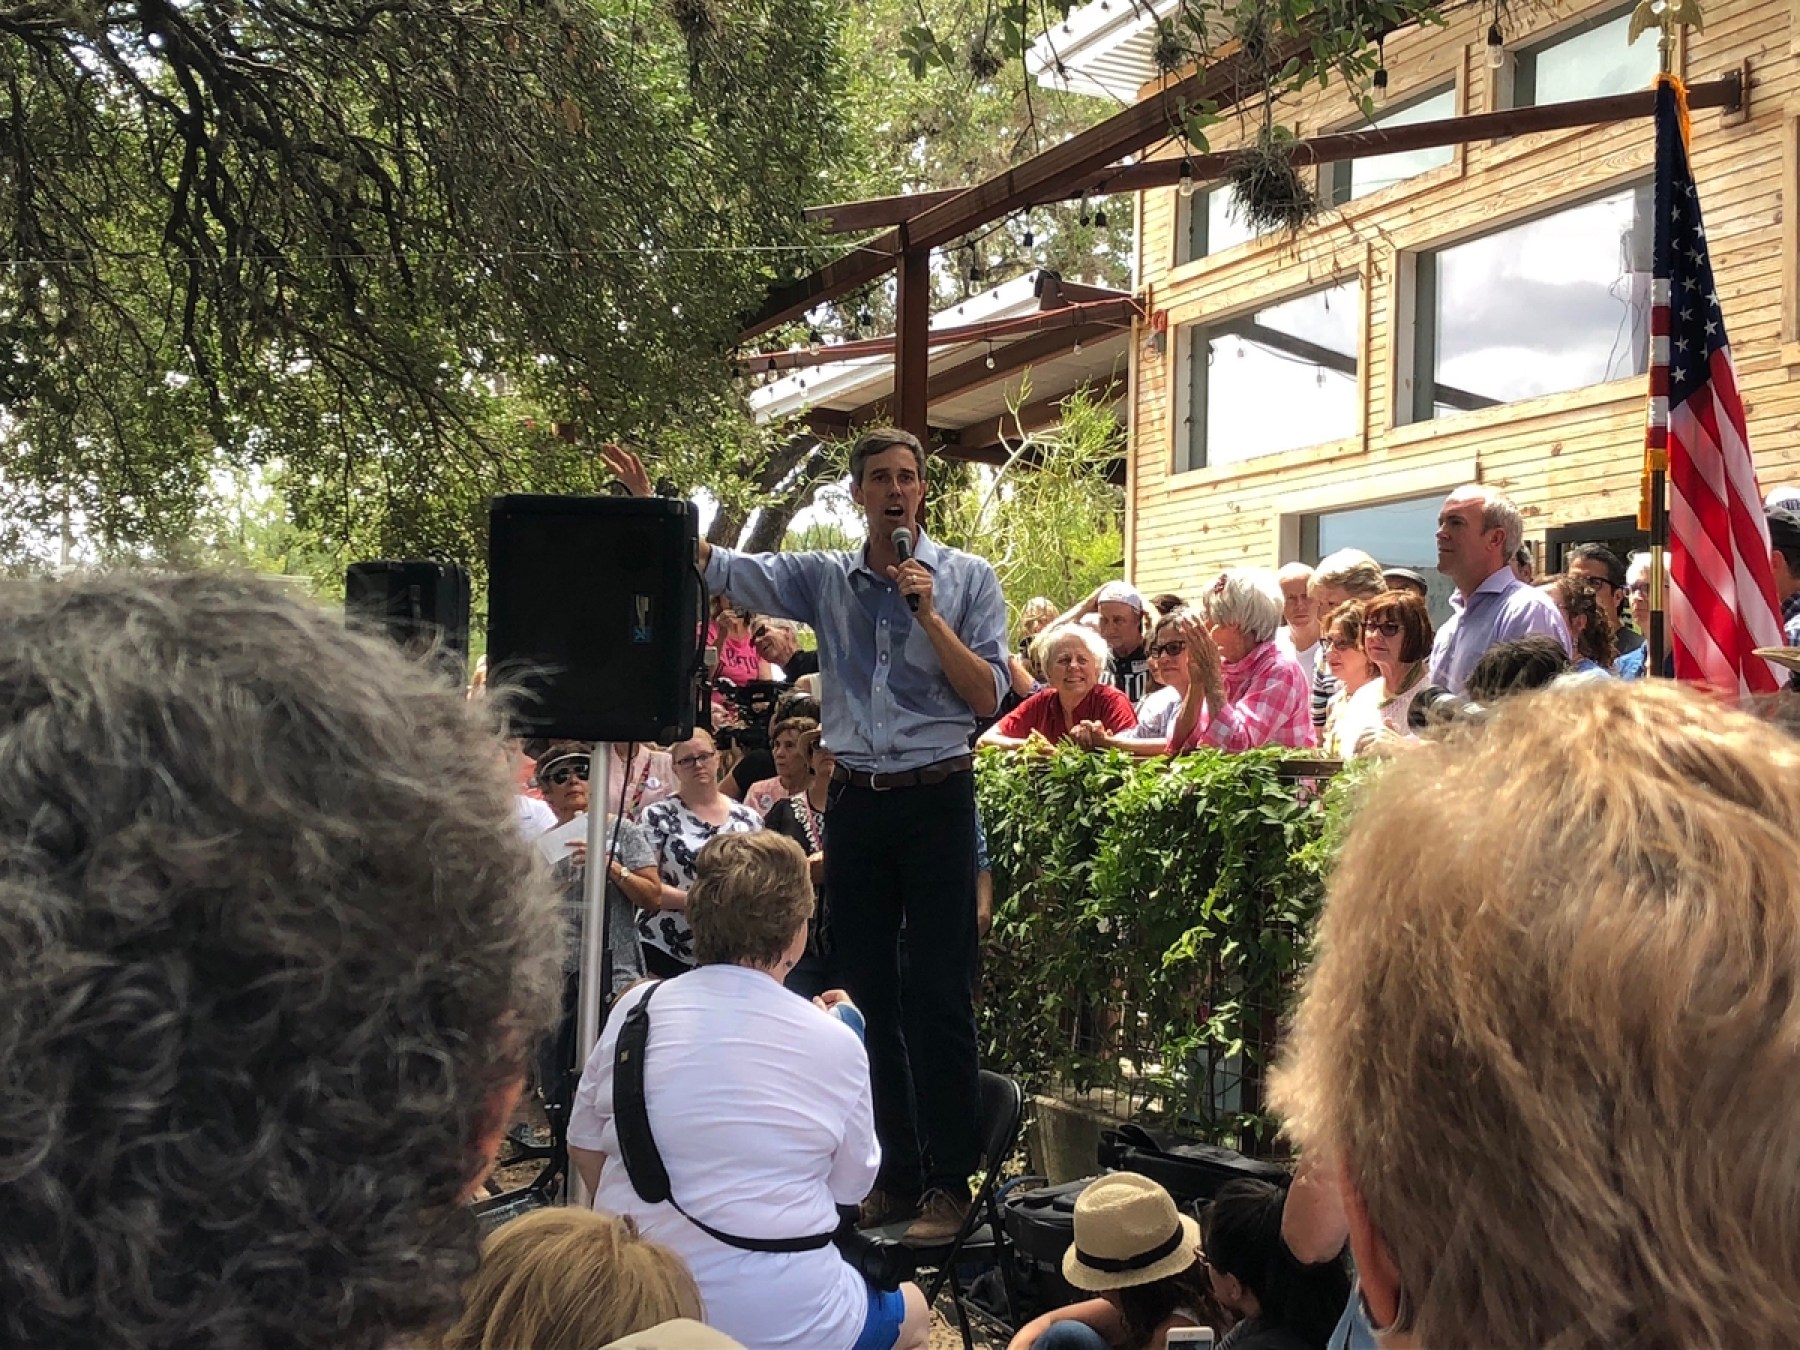 U.S. Senate Candidate Beto O'rourke campaigning in Johnson City, Texas in 93-degree weather (Matthew Reyna/Rantt Media)